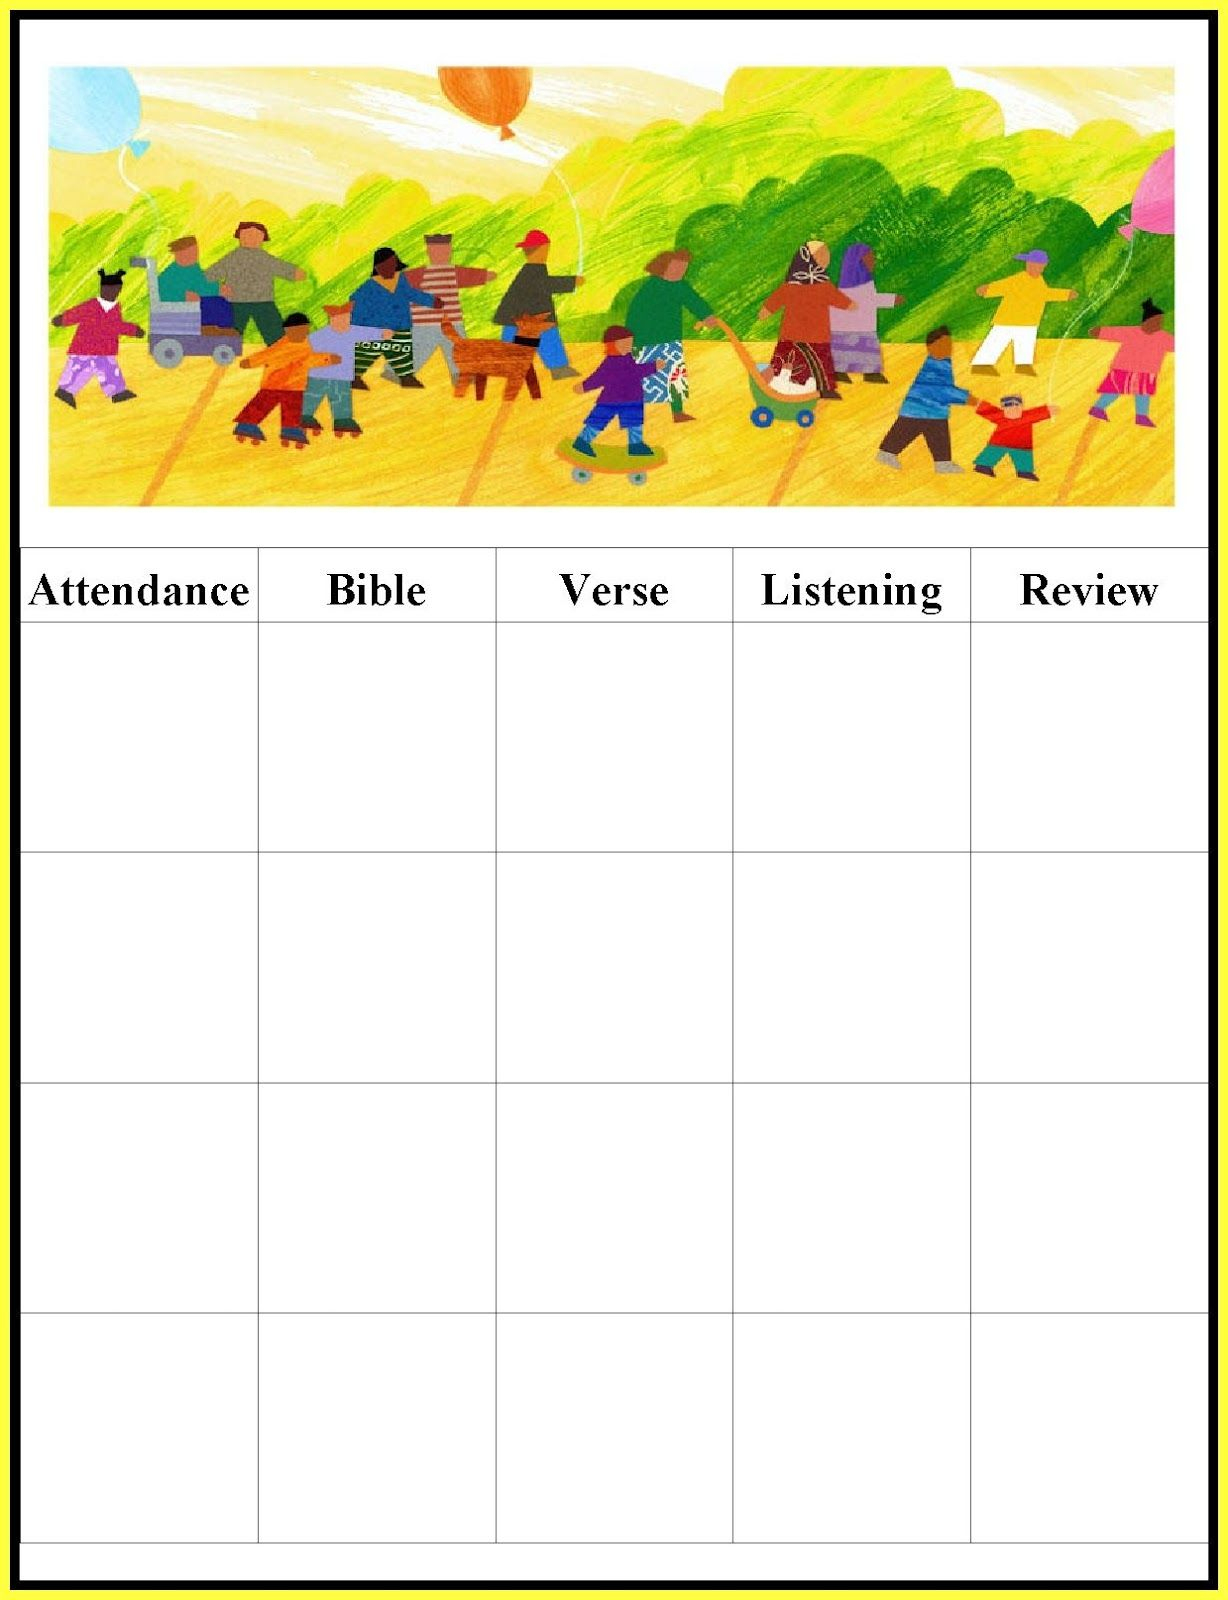 Childrens Gems In My Treasure Box: Sunday School - Attendance Charts - Free Printable Sunday School Attendance Sheet